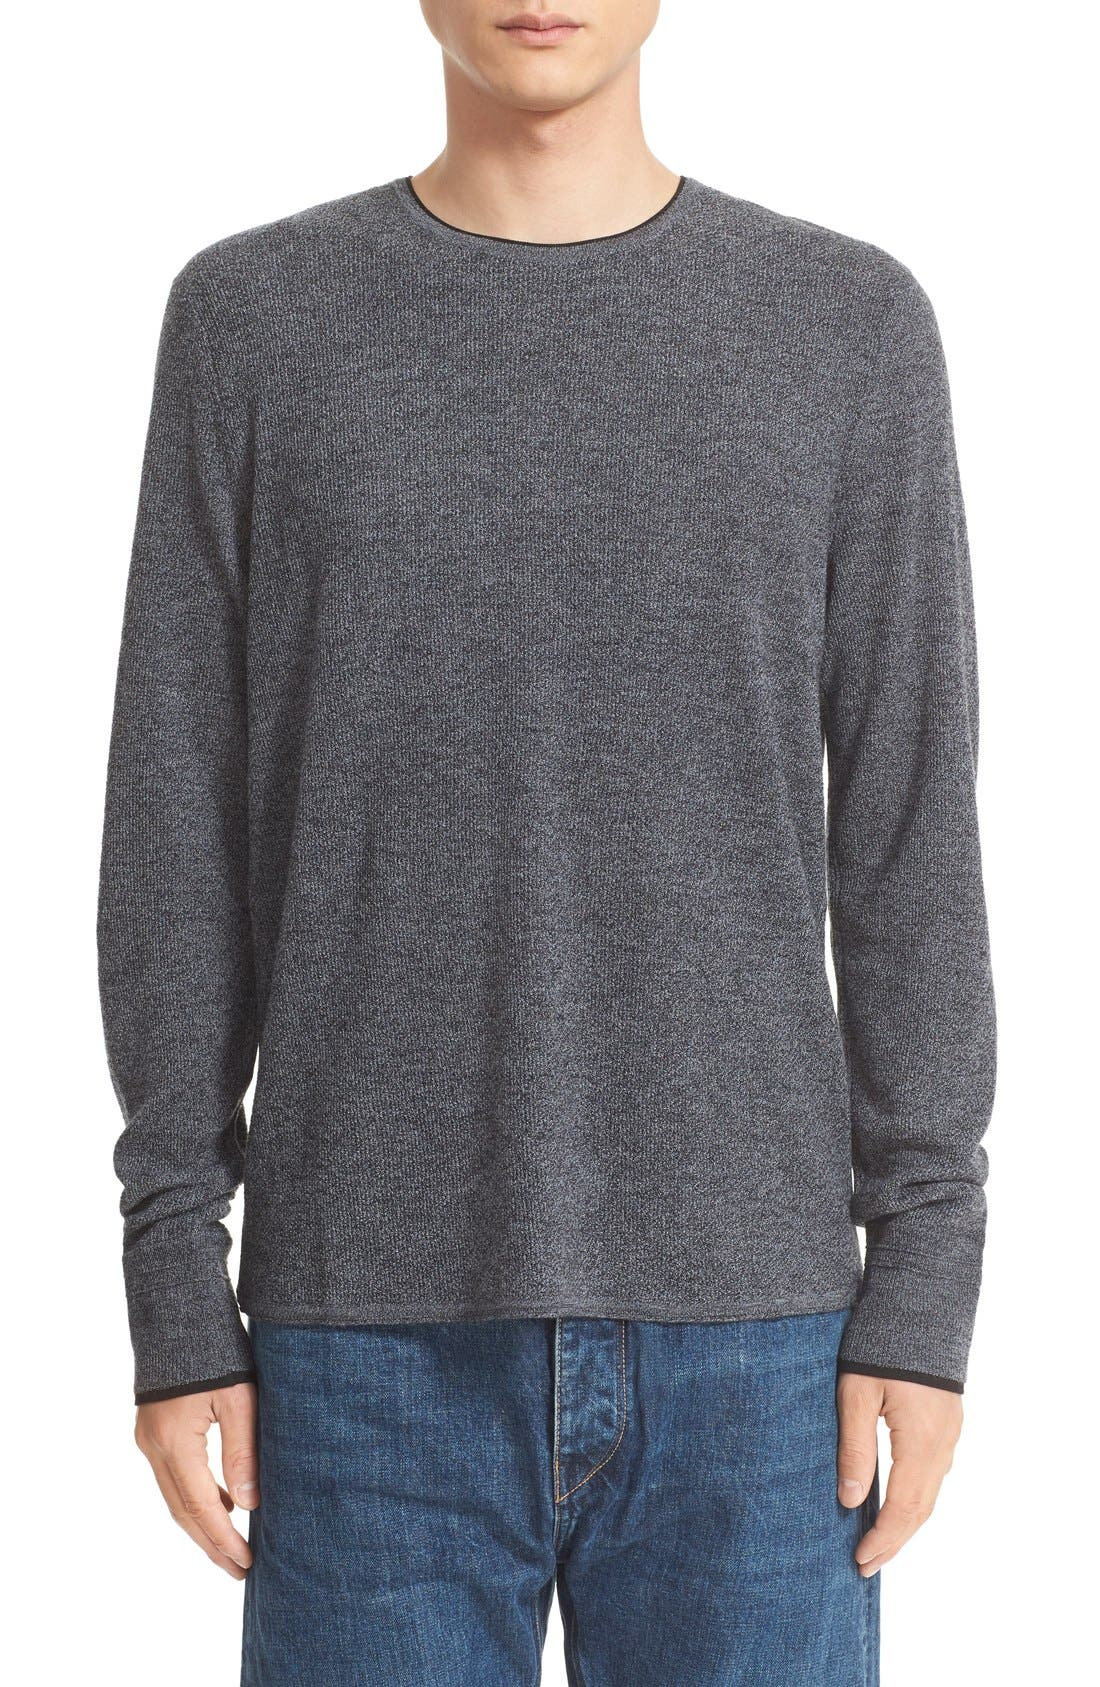 'Giles' Lightweight Merino Wool Pullover,                         Main,                         color, 010